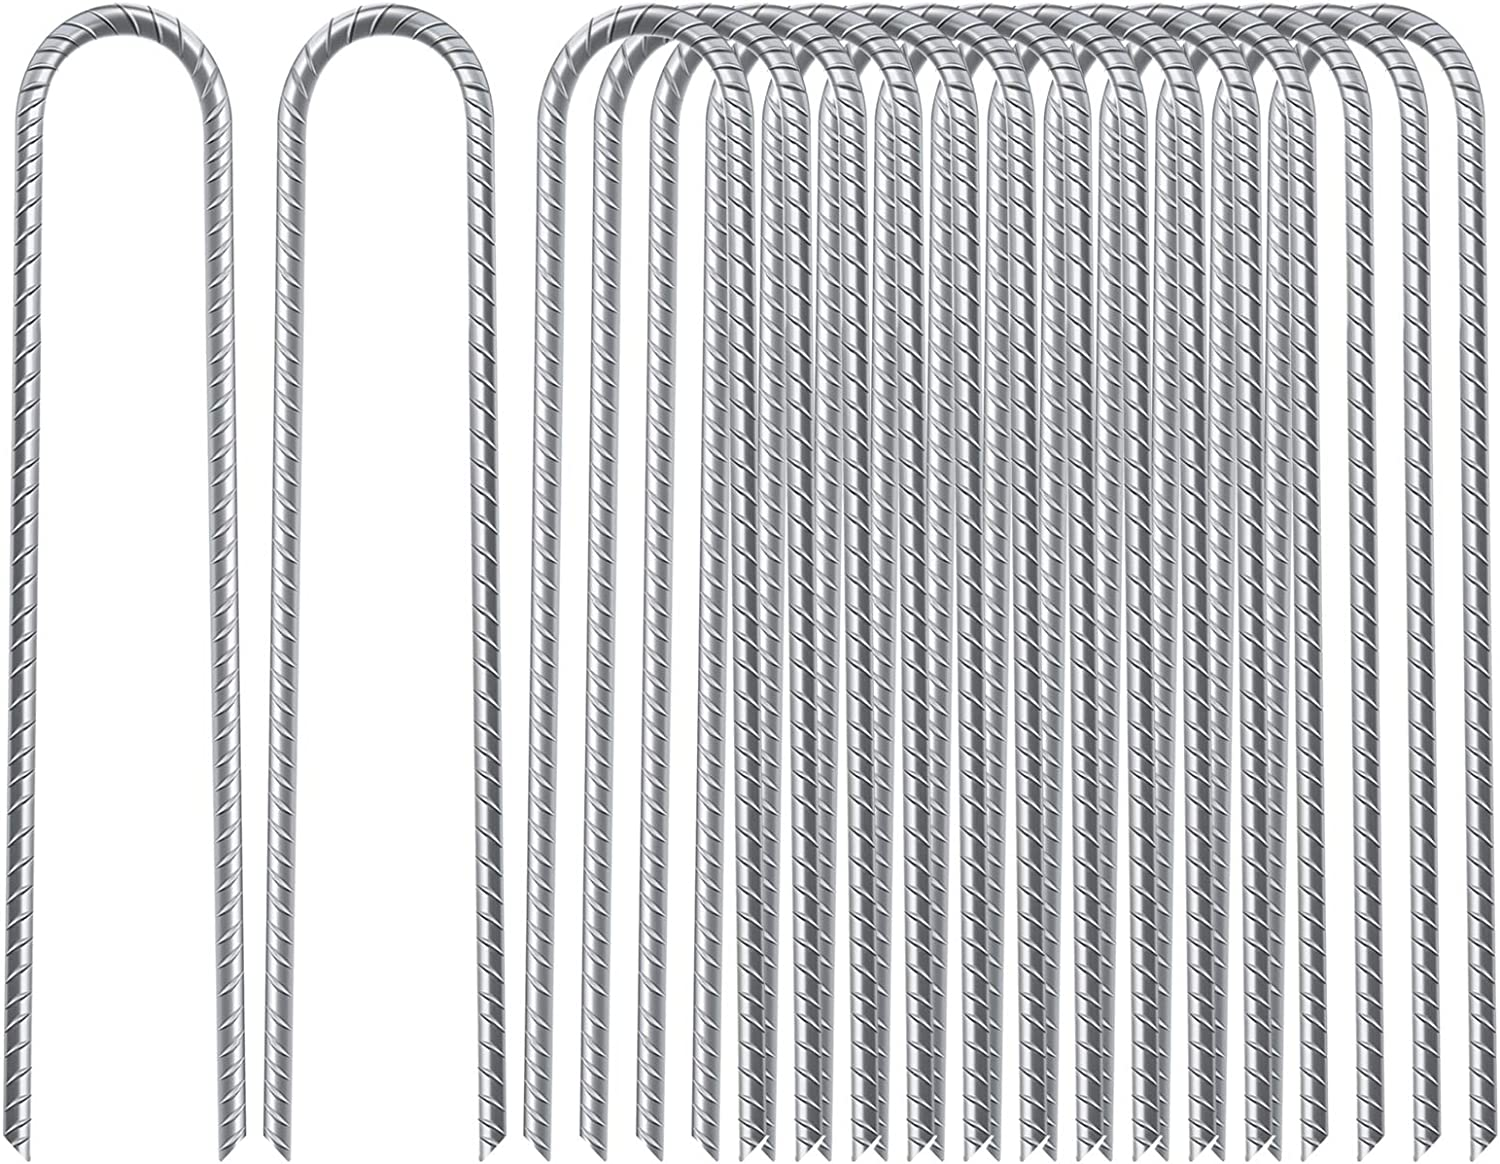 Max 61% OFF FEED GARDEN 16 Mesa Mall Inches Pack Galvanized Stakes Tra Rebar Hook U